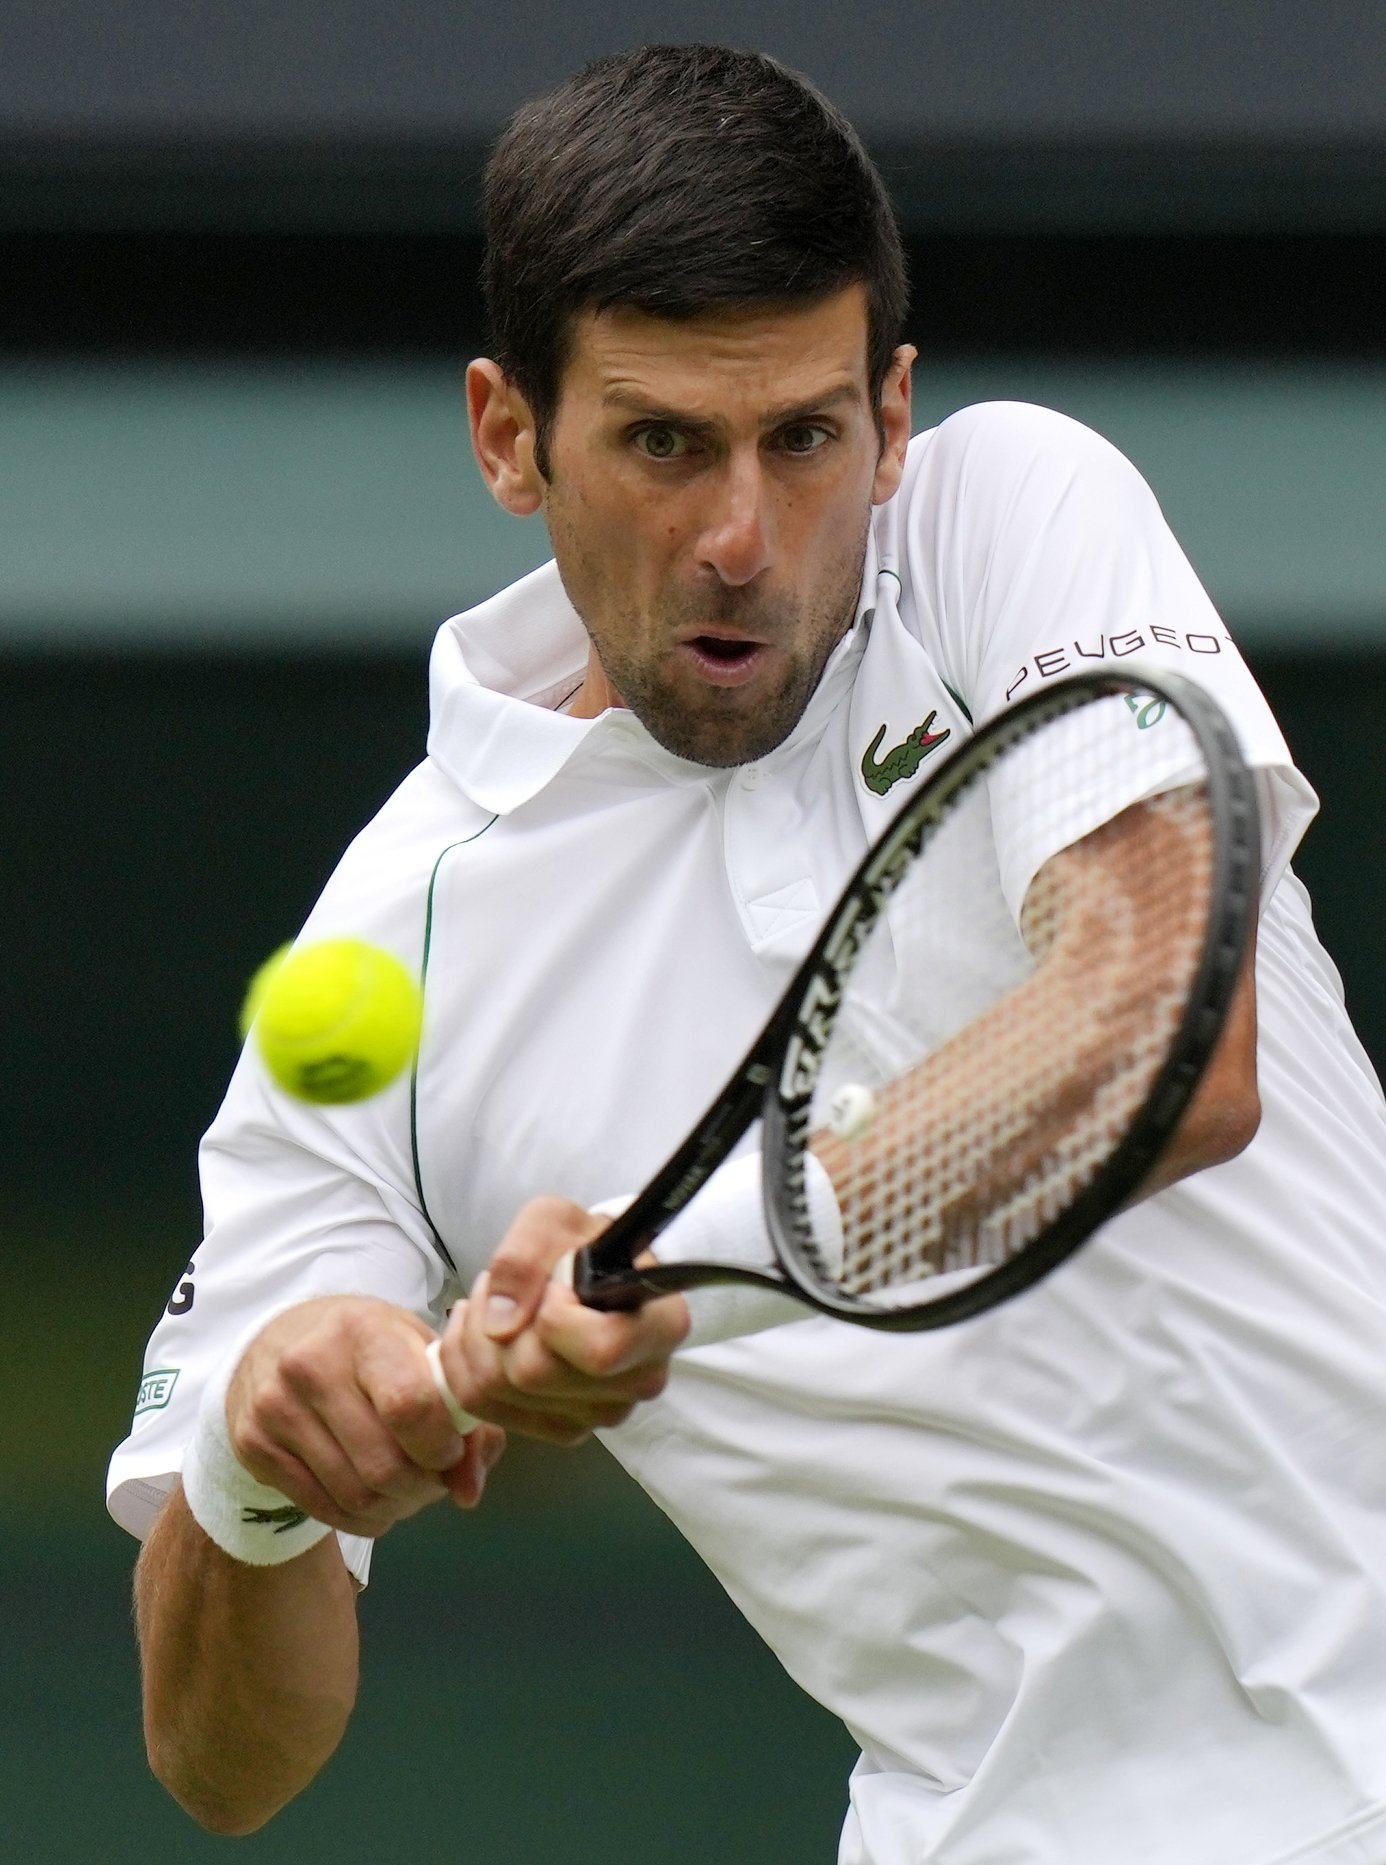 Serbia's Novak Djokovic plays a return to South Africa's Kevin Anderson during the 2021 Wimbledon men's singles second round match at The All England Tennis Club in Wimbledon, southwest London, England, June 30, 2021. (AFP Photo)